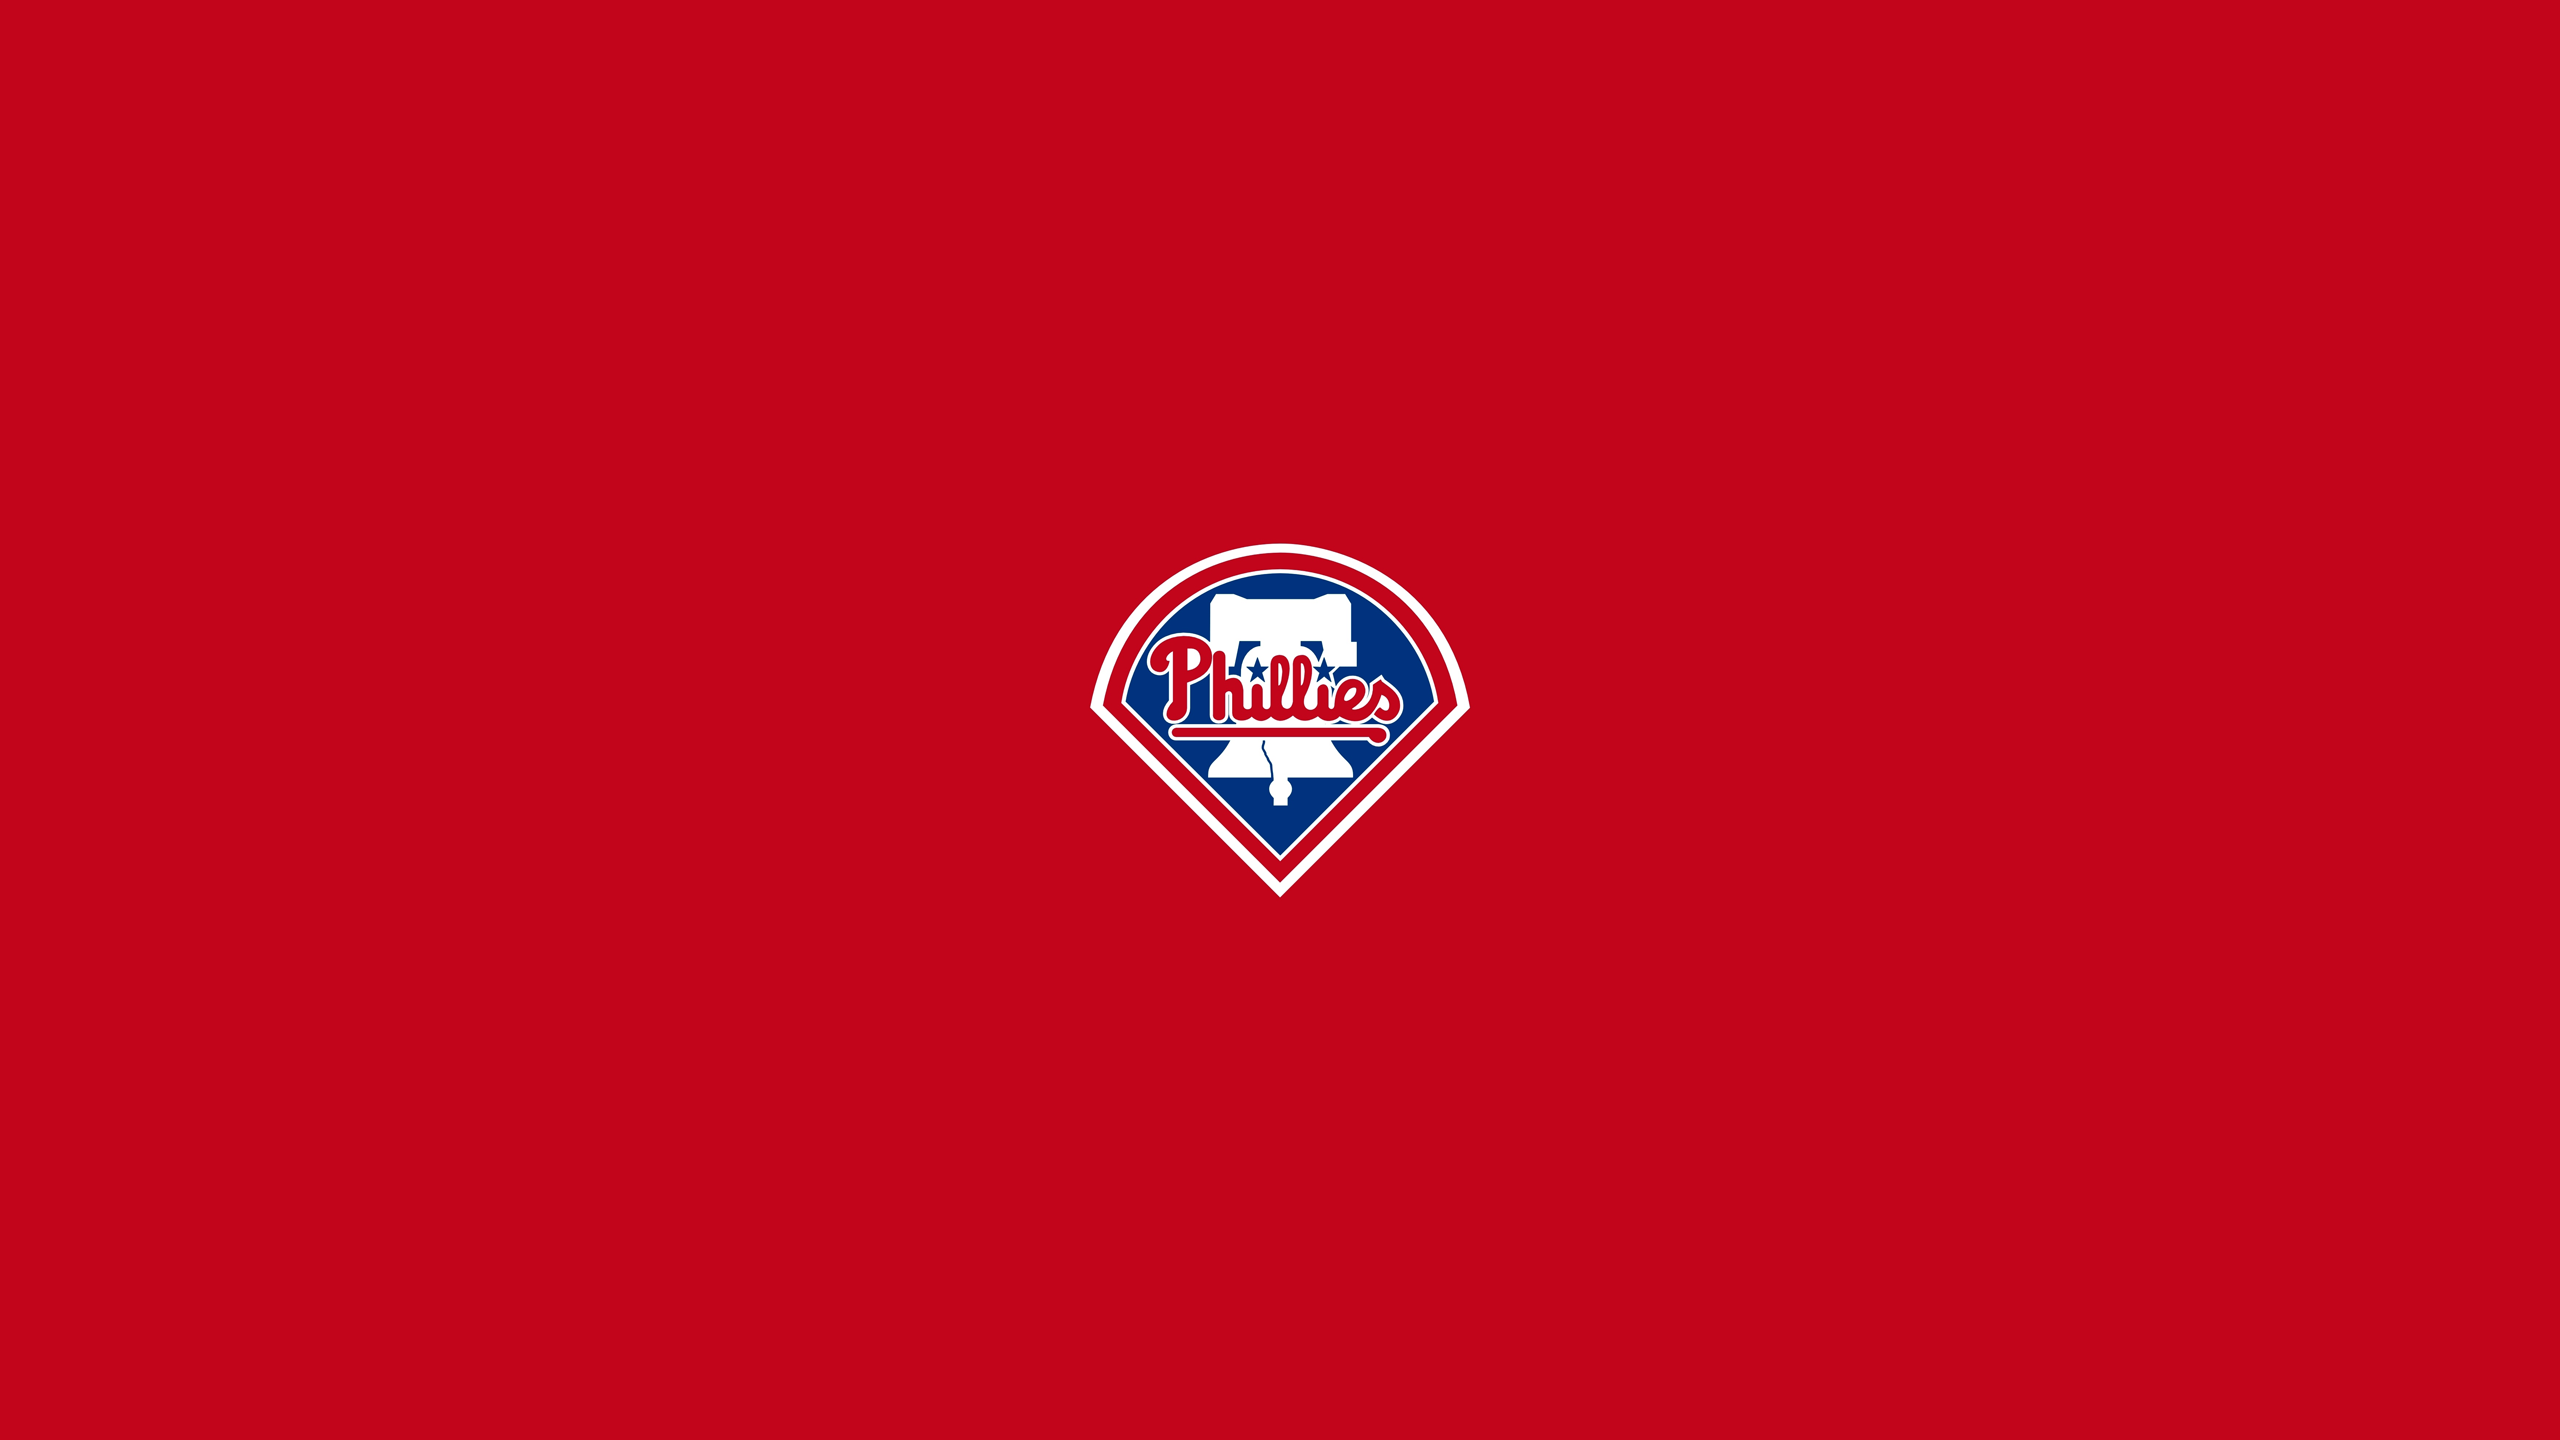 Phillies Wallpaper 13582 2560x1440 px